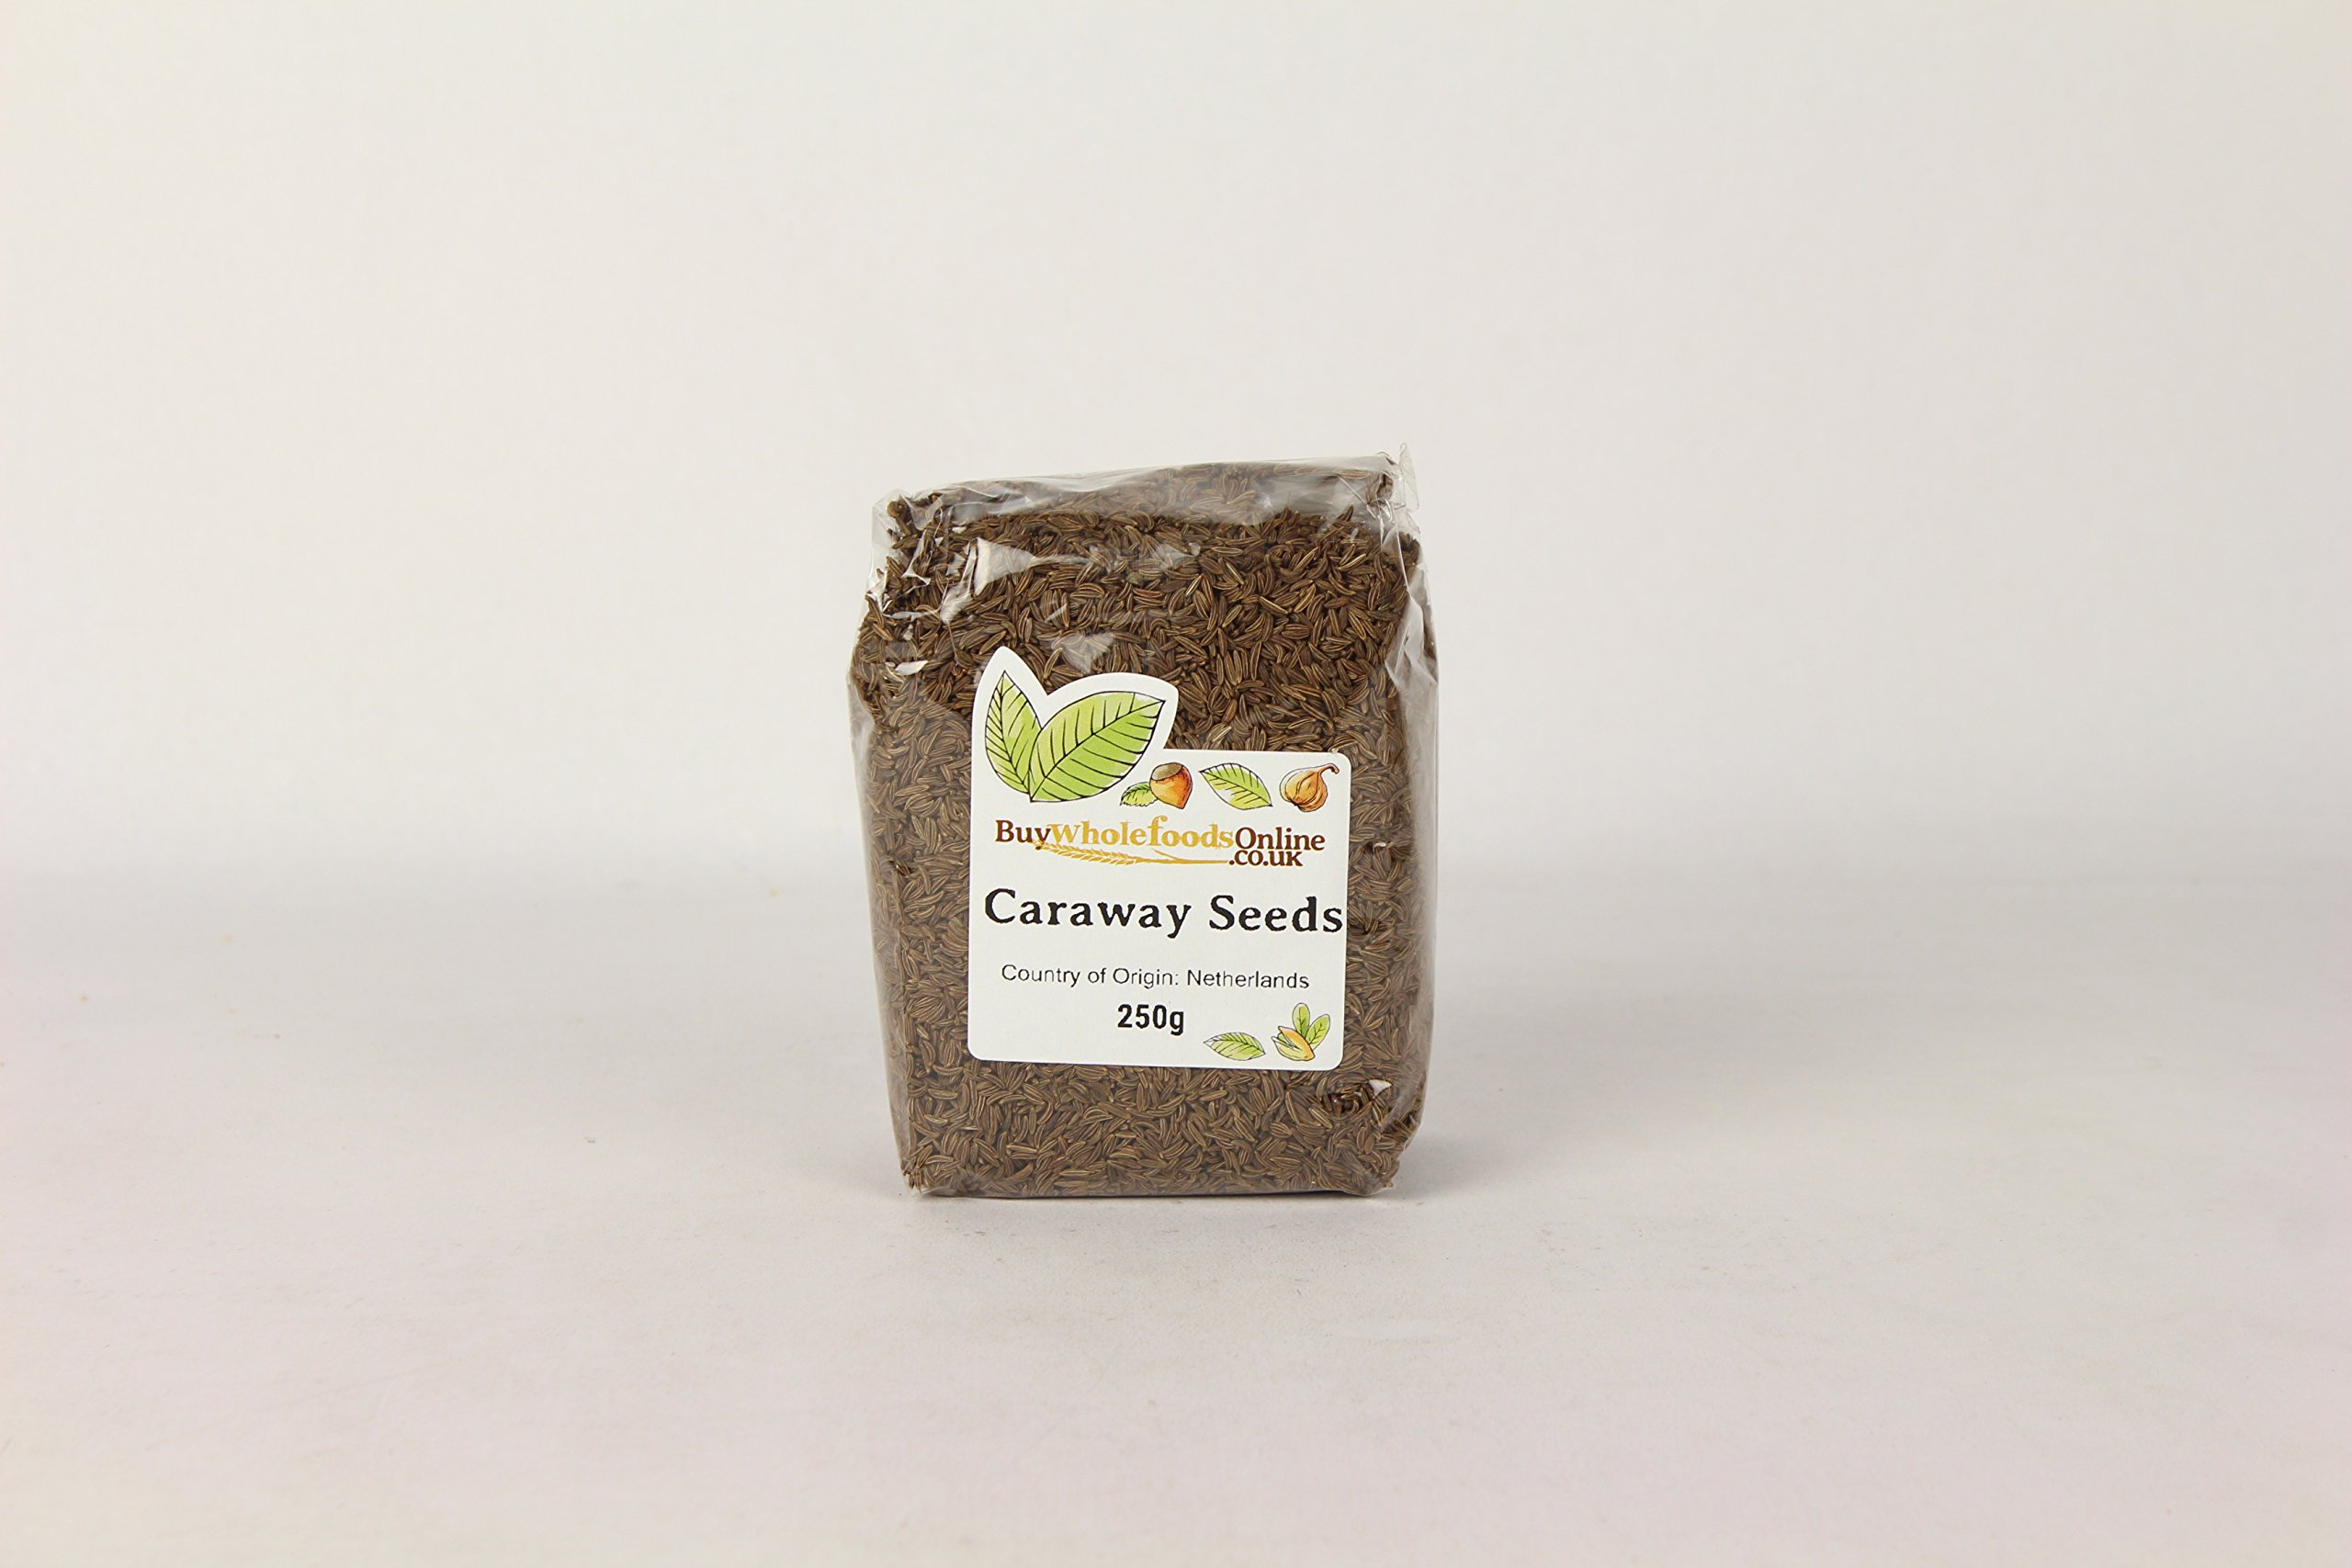 Buy Whole Foods Caraway Seeds 250 g